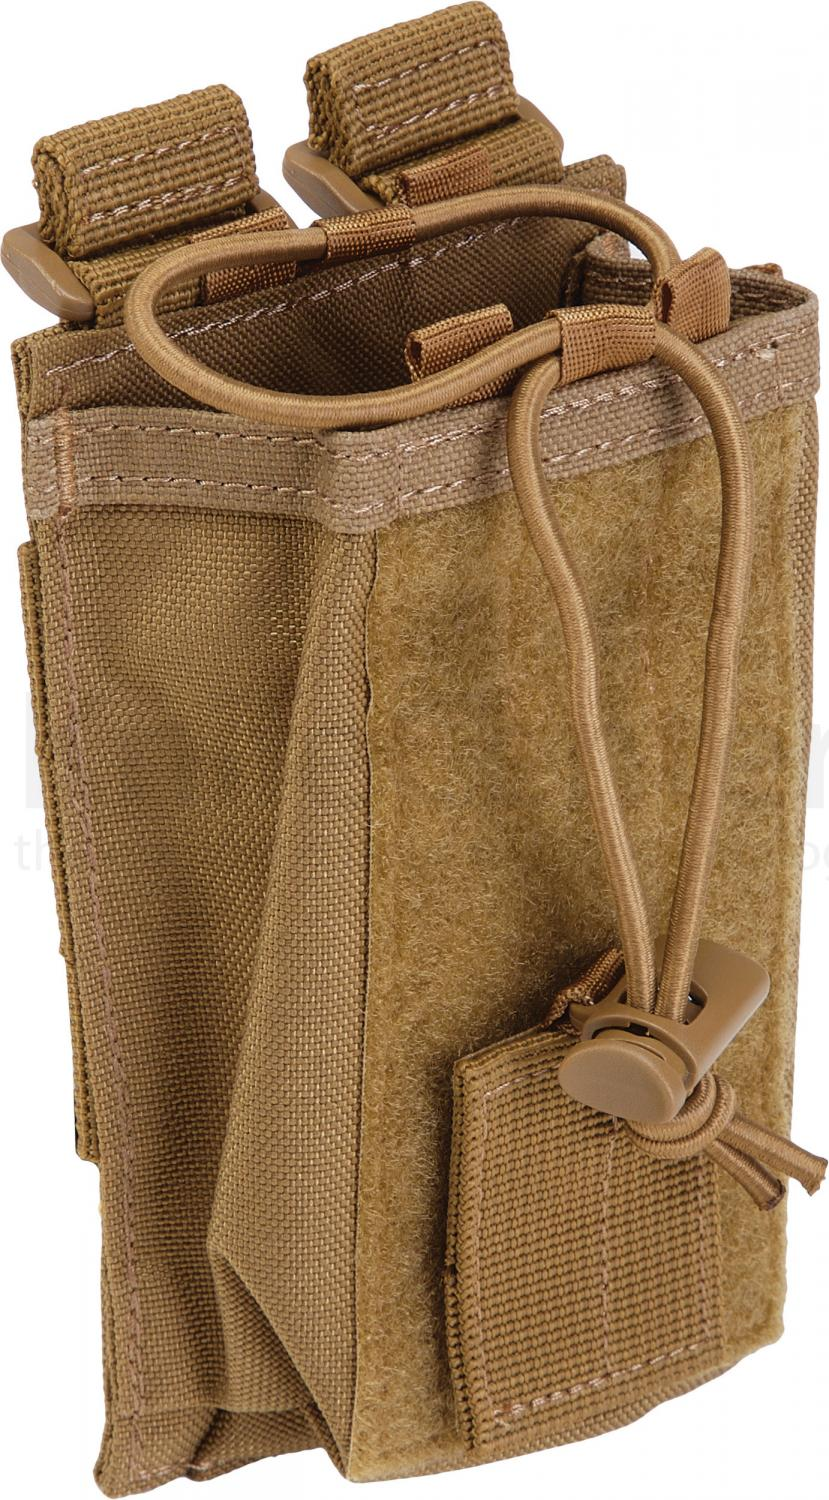 5.11 Tactical Radio Pouch, Flat Dark Earth (58718-131)